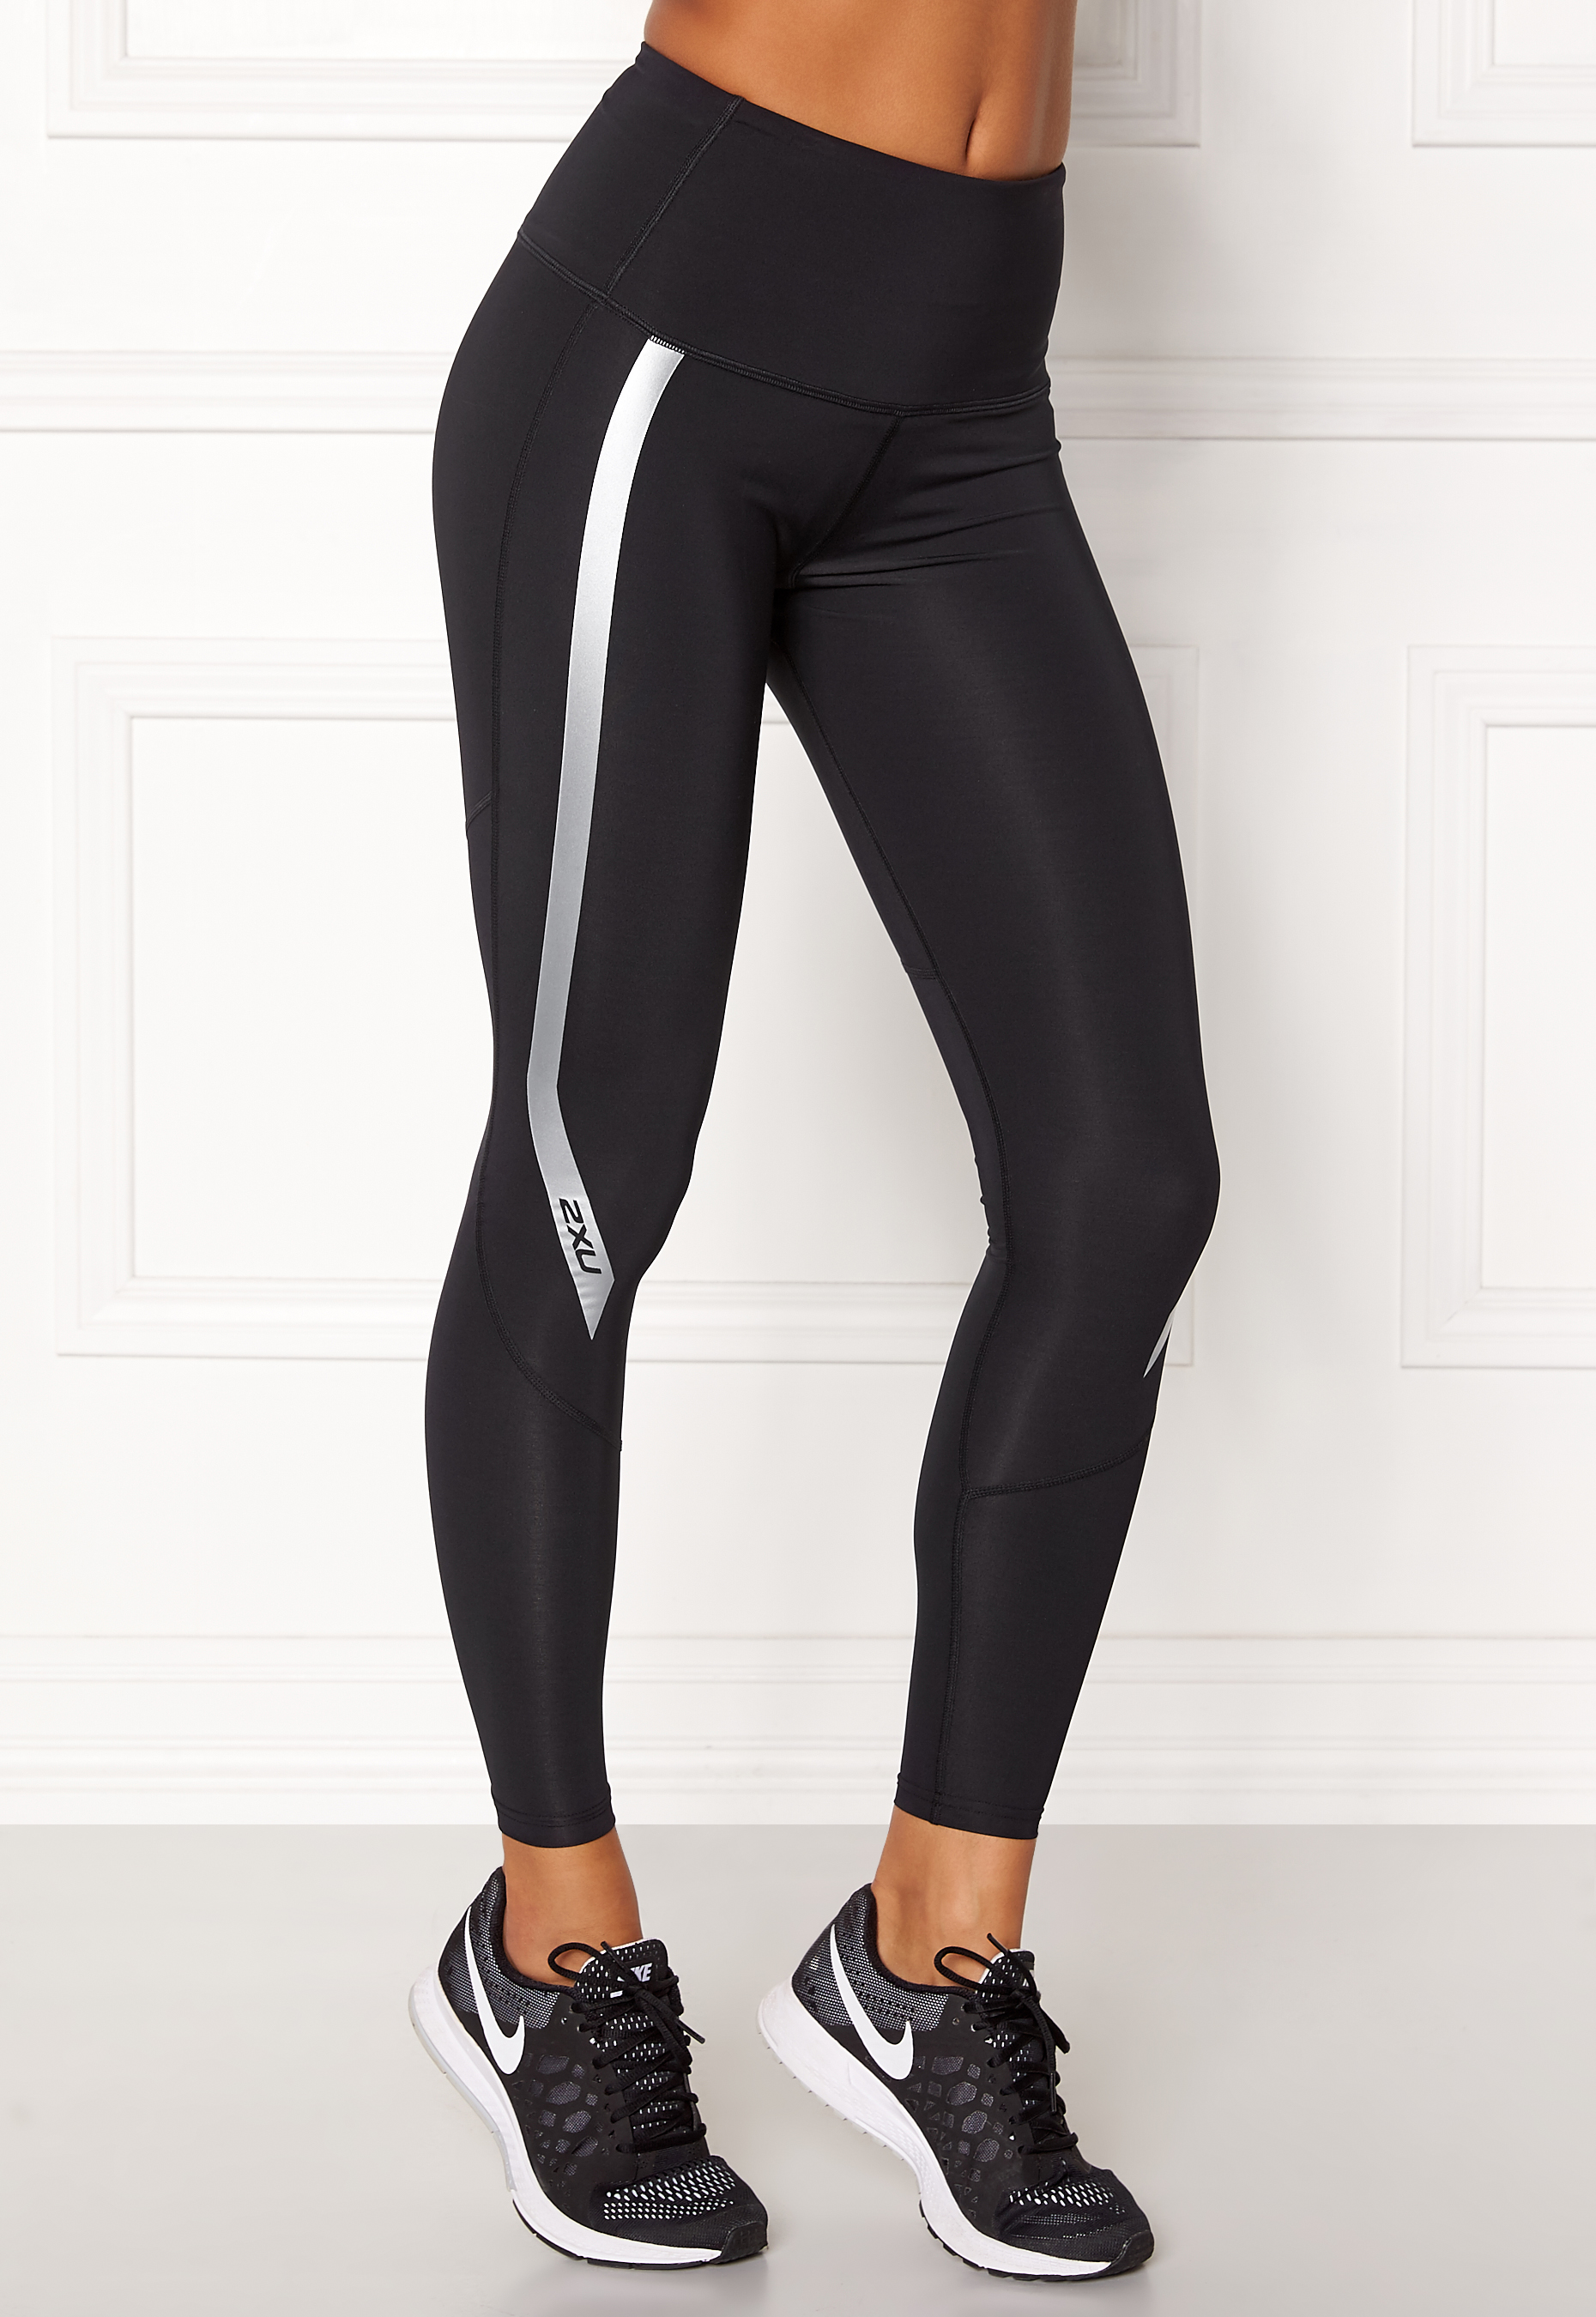 c0e30803 2XU Hi-Rise Compression Tight Black/silver - Bubbleroom